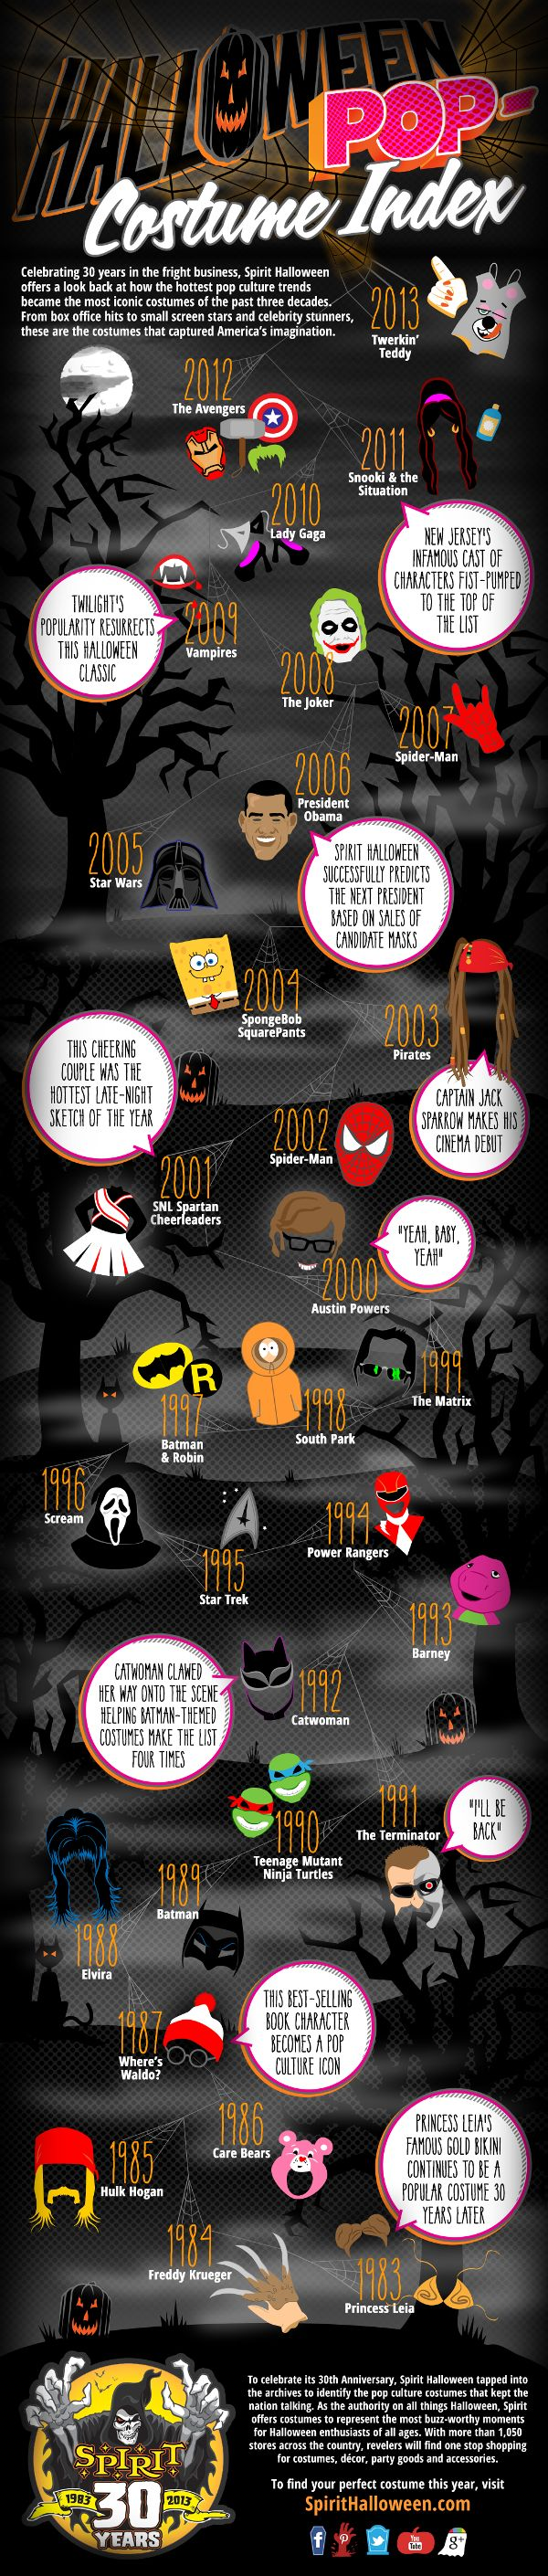 Halloweenis a yearly celebrationobserved in a number of countrieson October 31, the eve of theWesternChristianfeast ofAll Hallowsand the day dedicated to remembering the dead. #Holloween costumes #costumes #dressing #chiristian feast #celebration